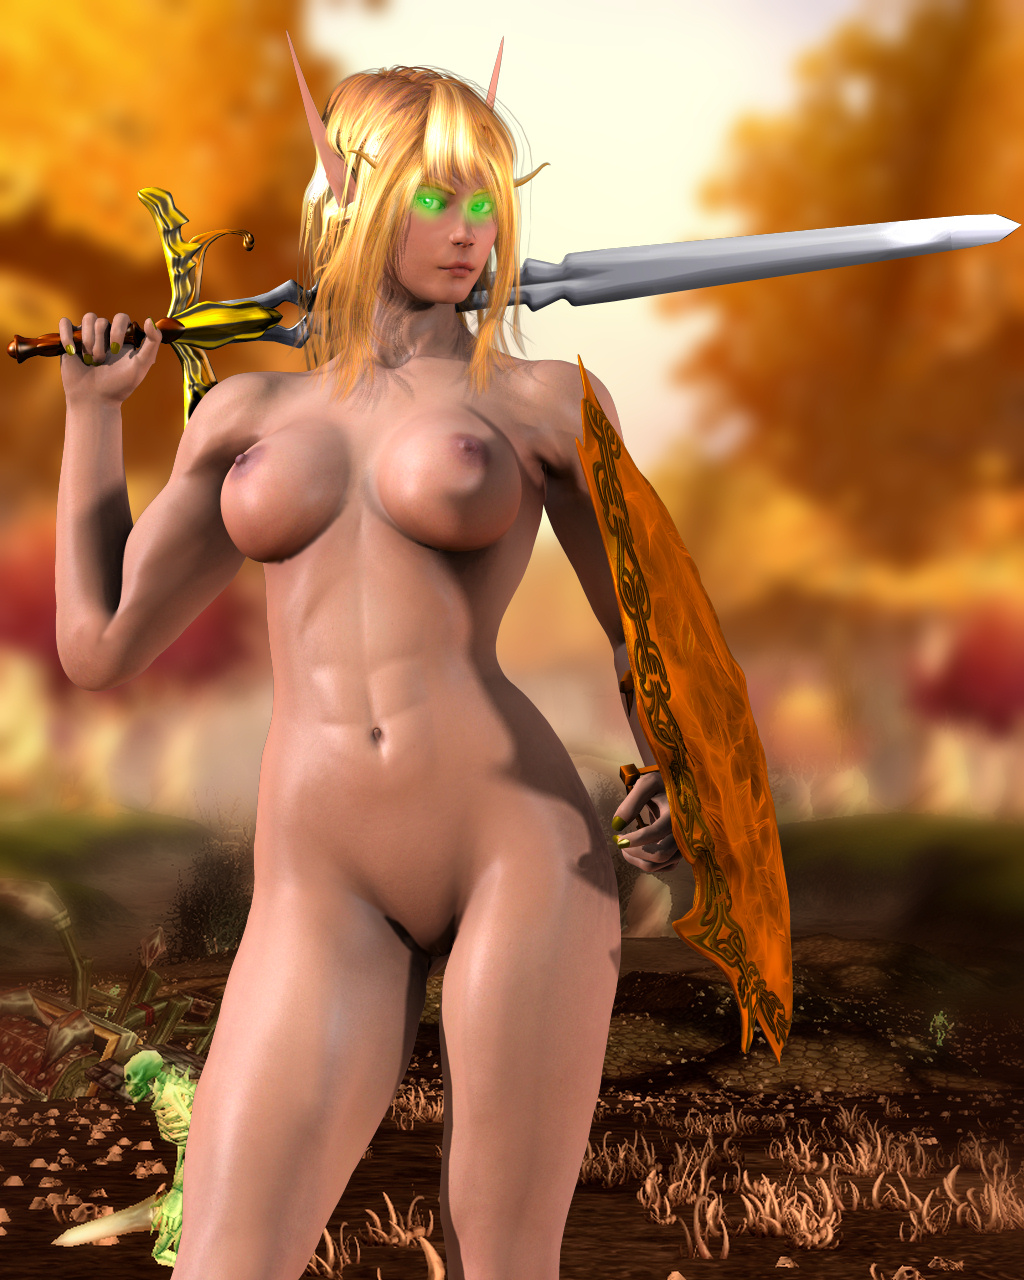 Elf nudes pron cute models